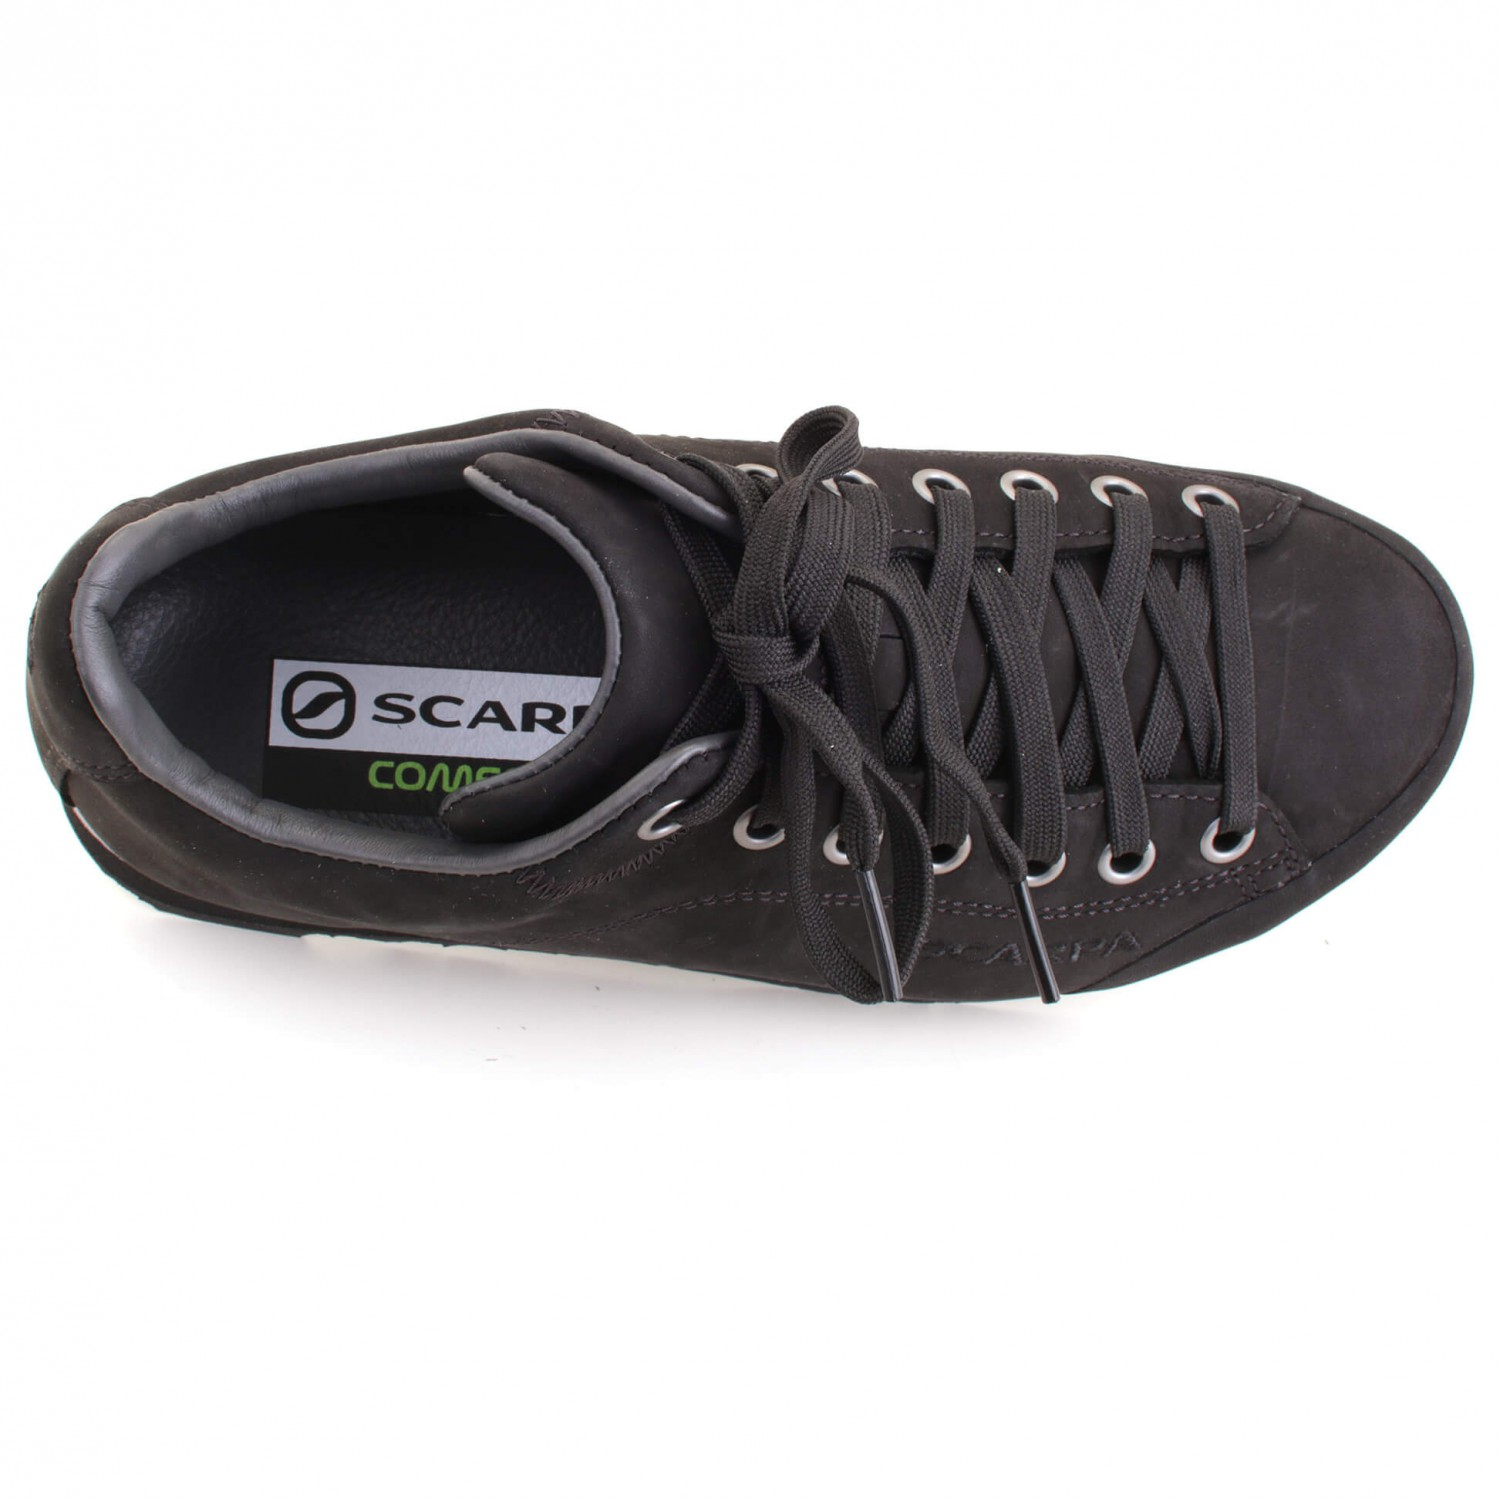 Margarita it SneakerAcquista Online Scarpa Bergfreunde Leather Jc3lFKT1